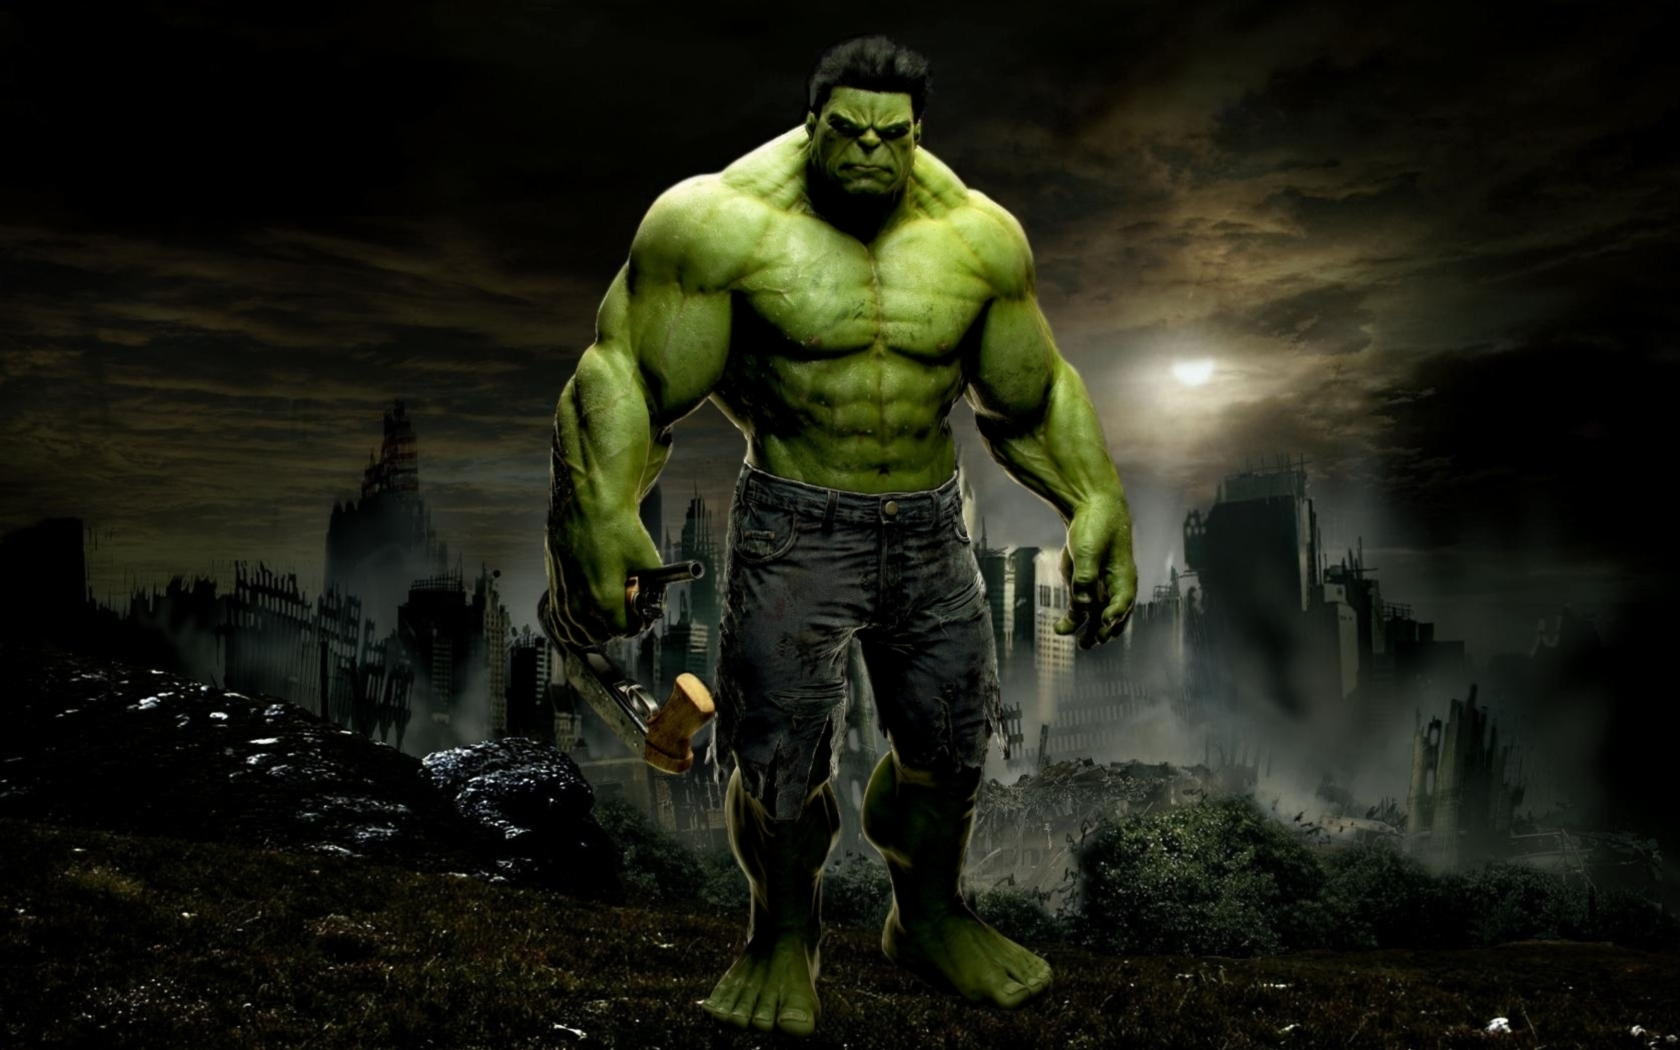 Download Awesome Marvel Hulk Wallpaper 1680x1050 Full HD Wallpapers 1680x1050